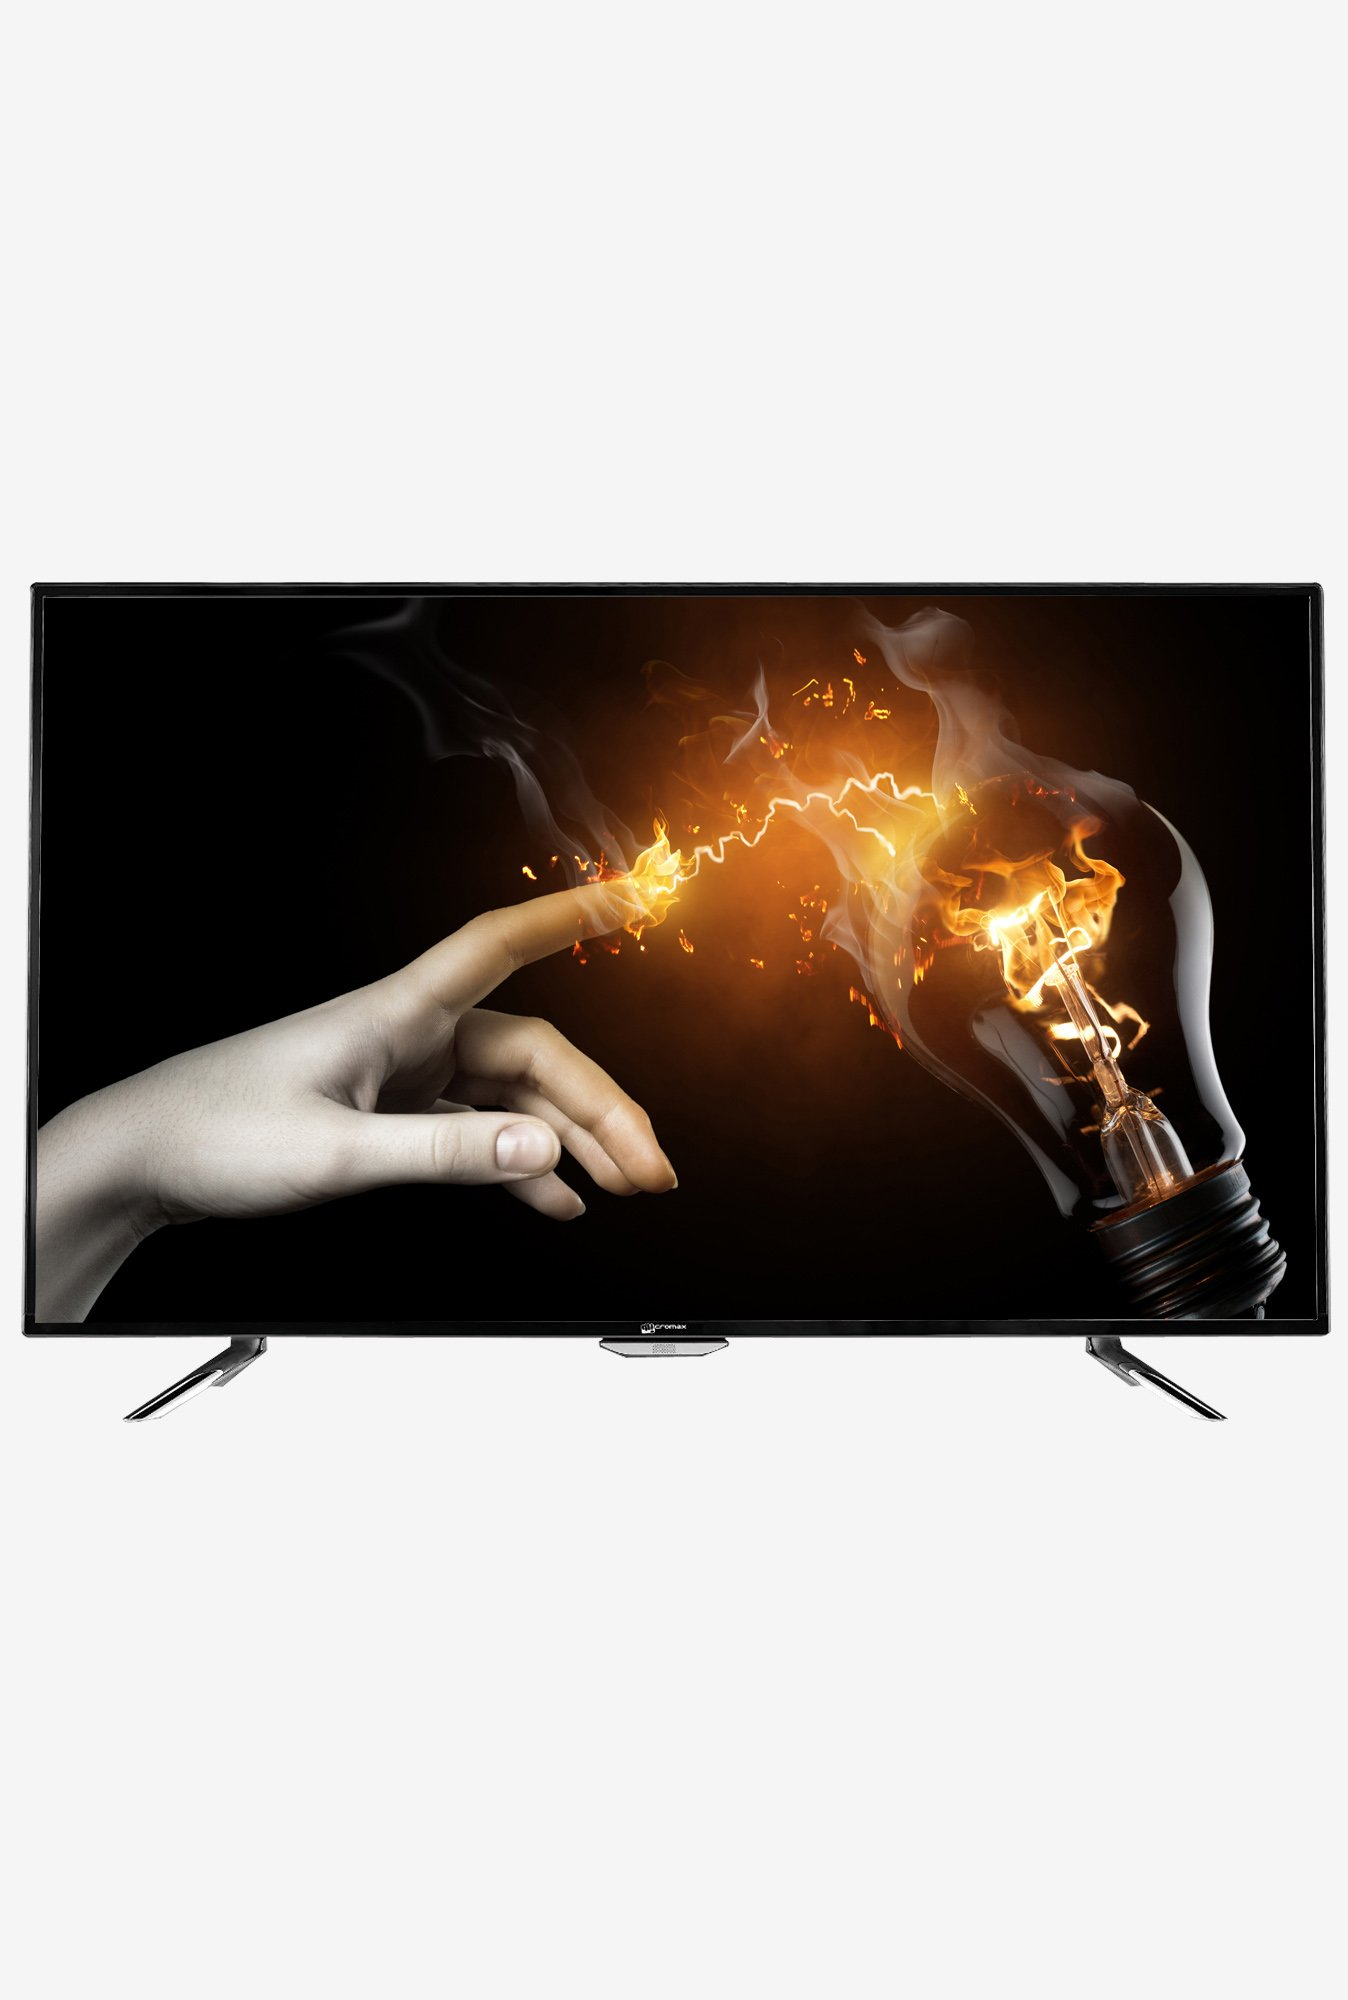 Micromax 50C5500FHD 124 cm (49 inches) Full HD LED TV